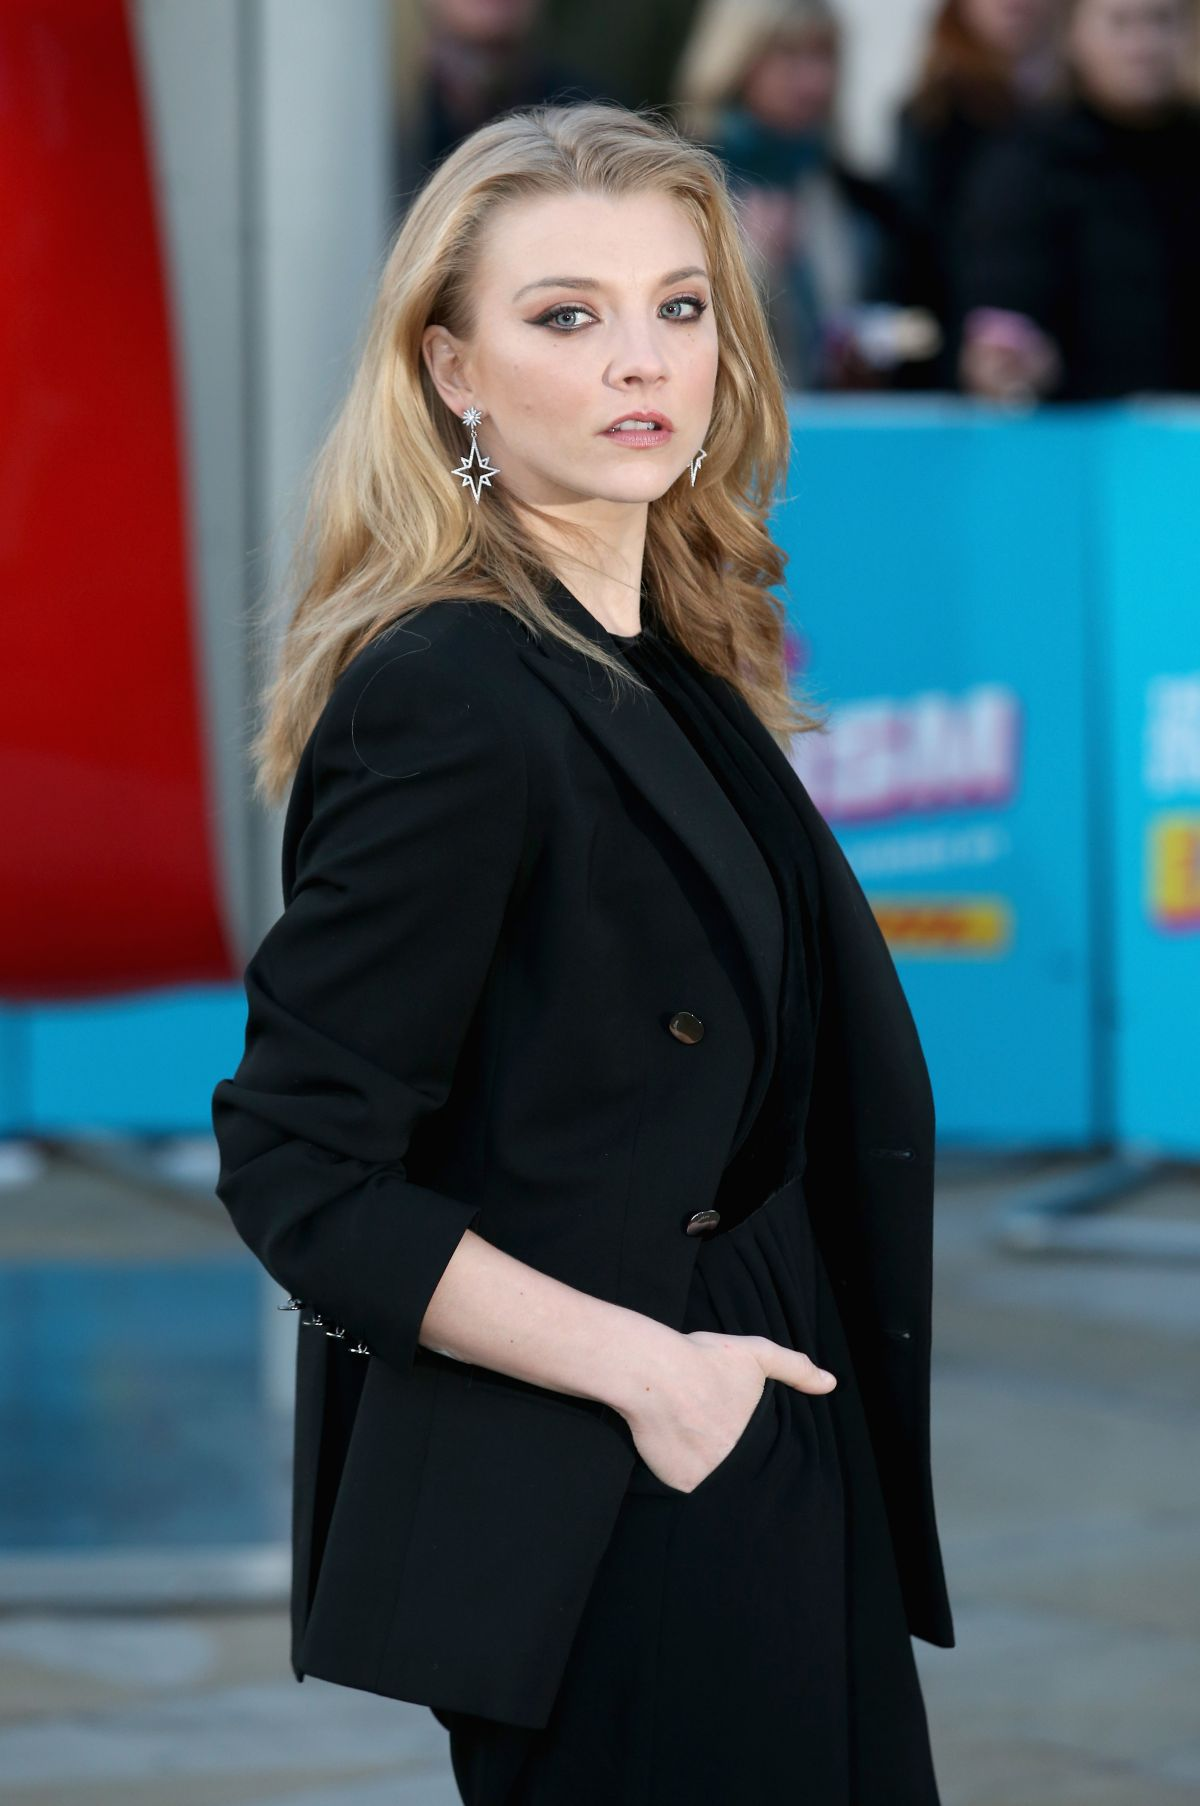 NATALIE DORMER at The Rolling Stones Exhibitionism in London 04/04/2016